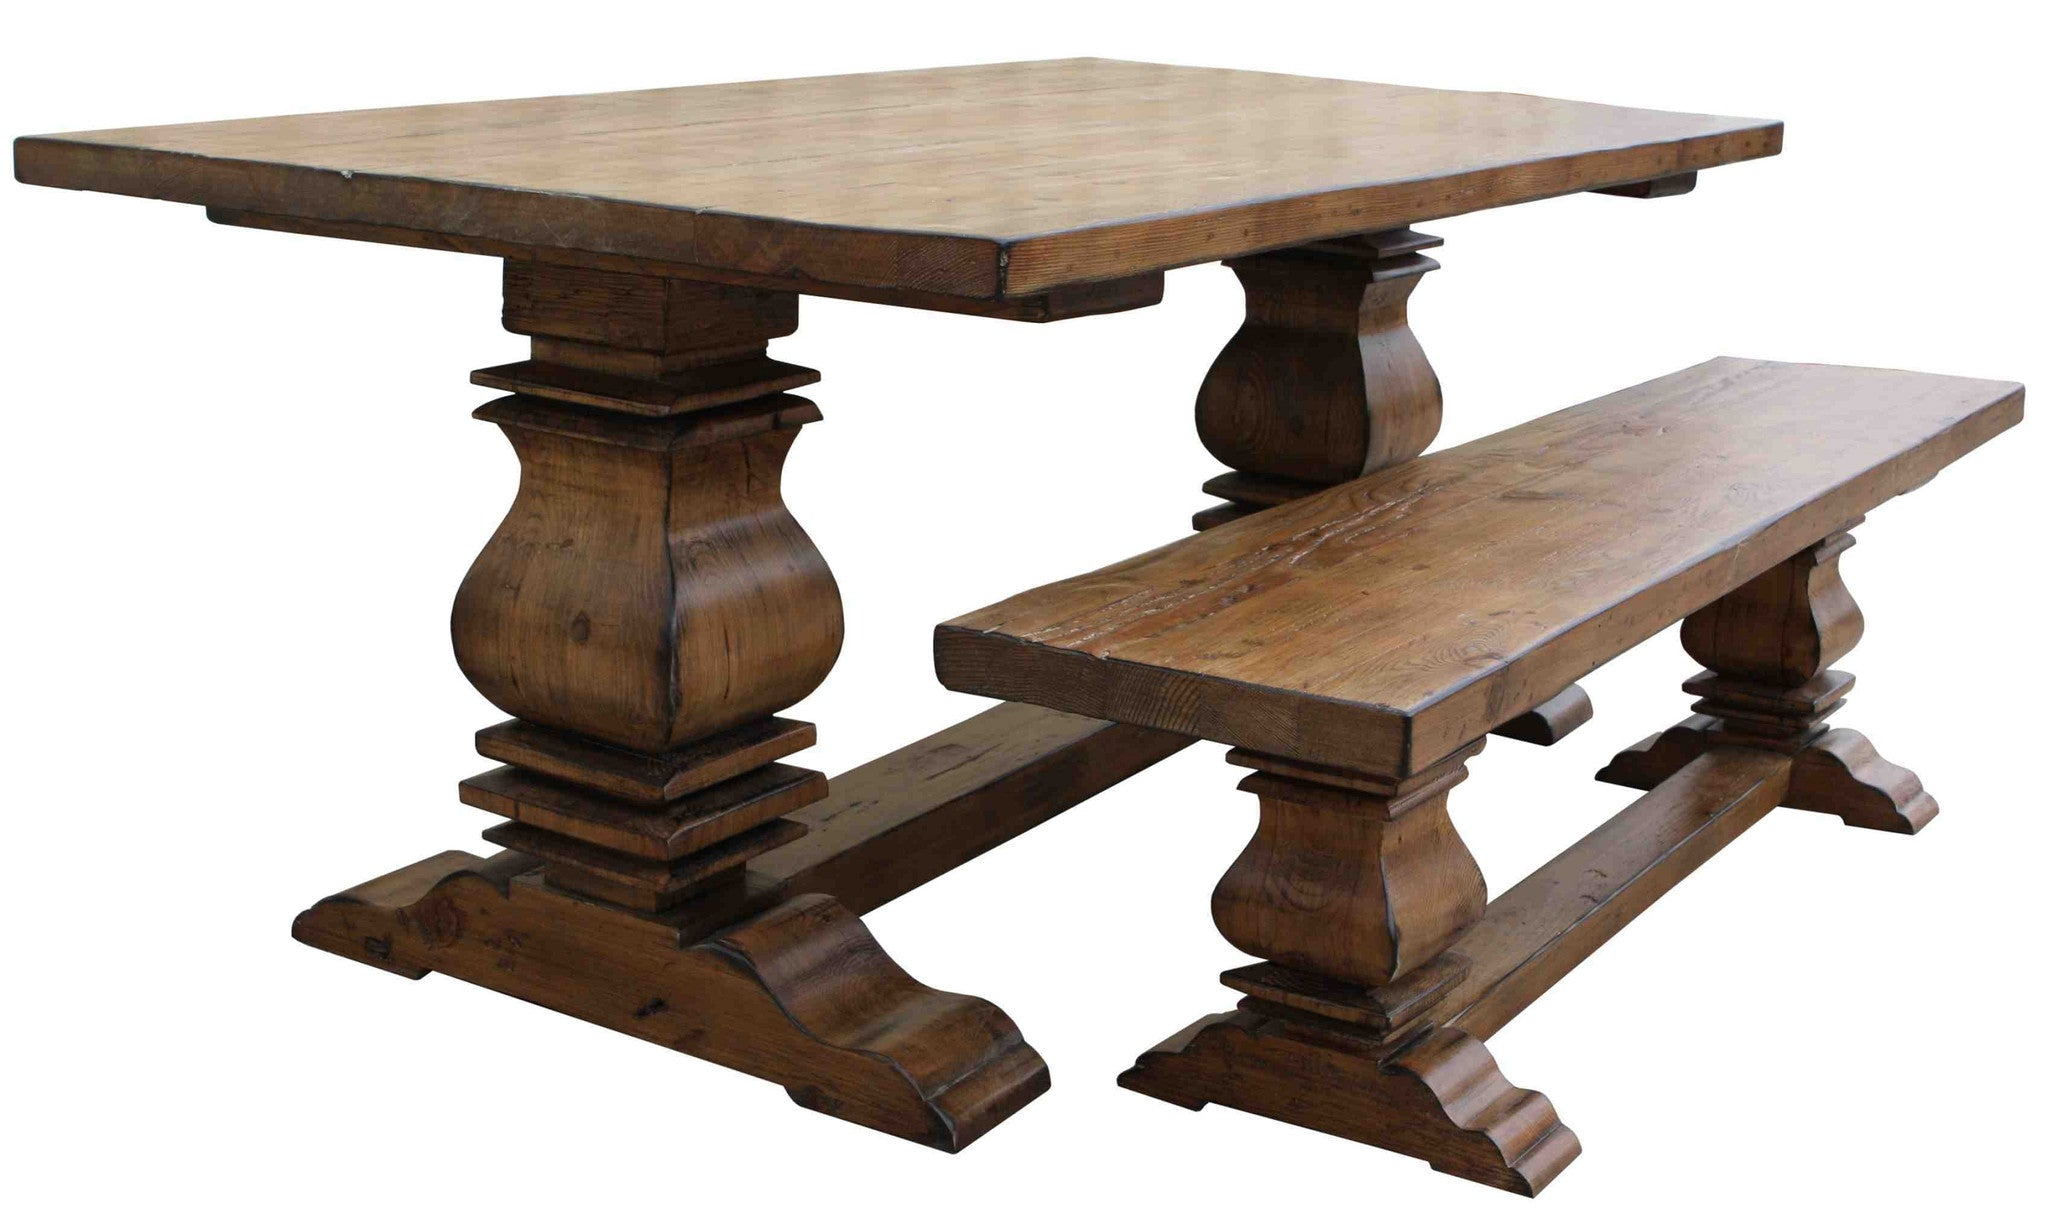 Custom Reclaimed Wood Trestle Dining Room Tables Handmade From